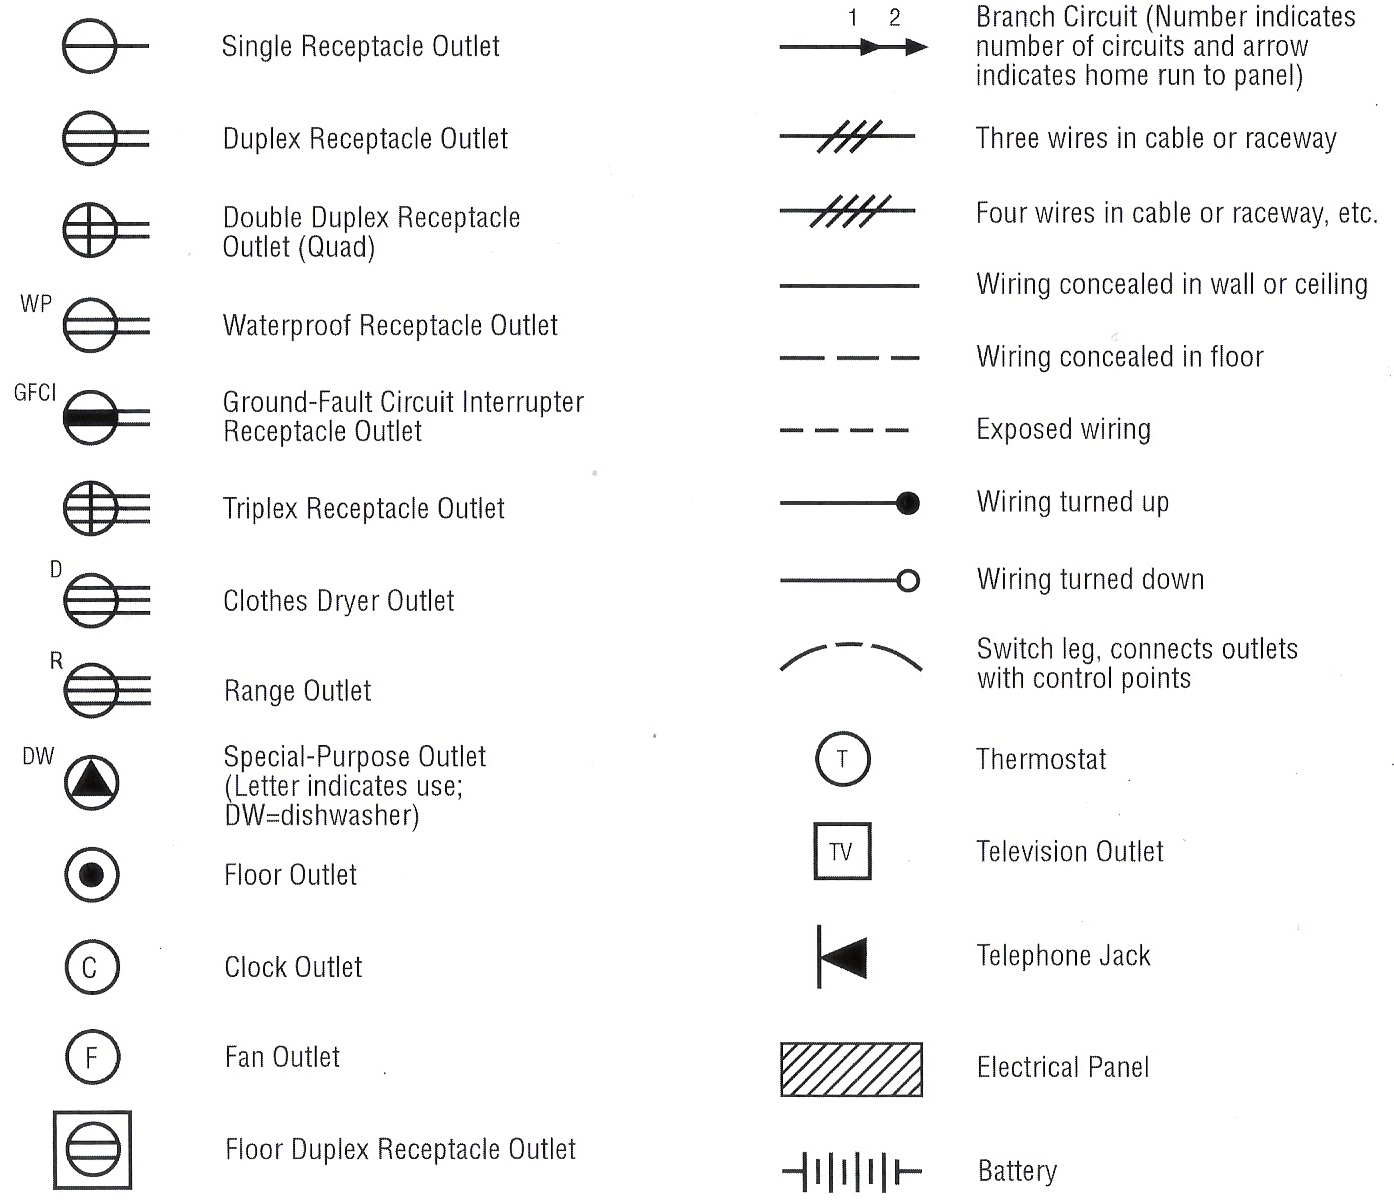 Upper Thermostat Electric Water Heater Wiring Diagram For Standalone Photocell Get Free